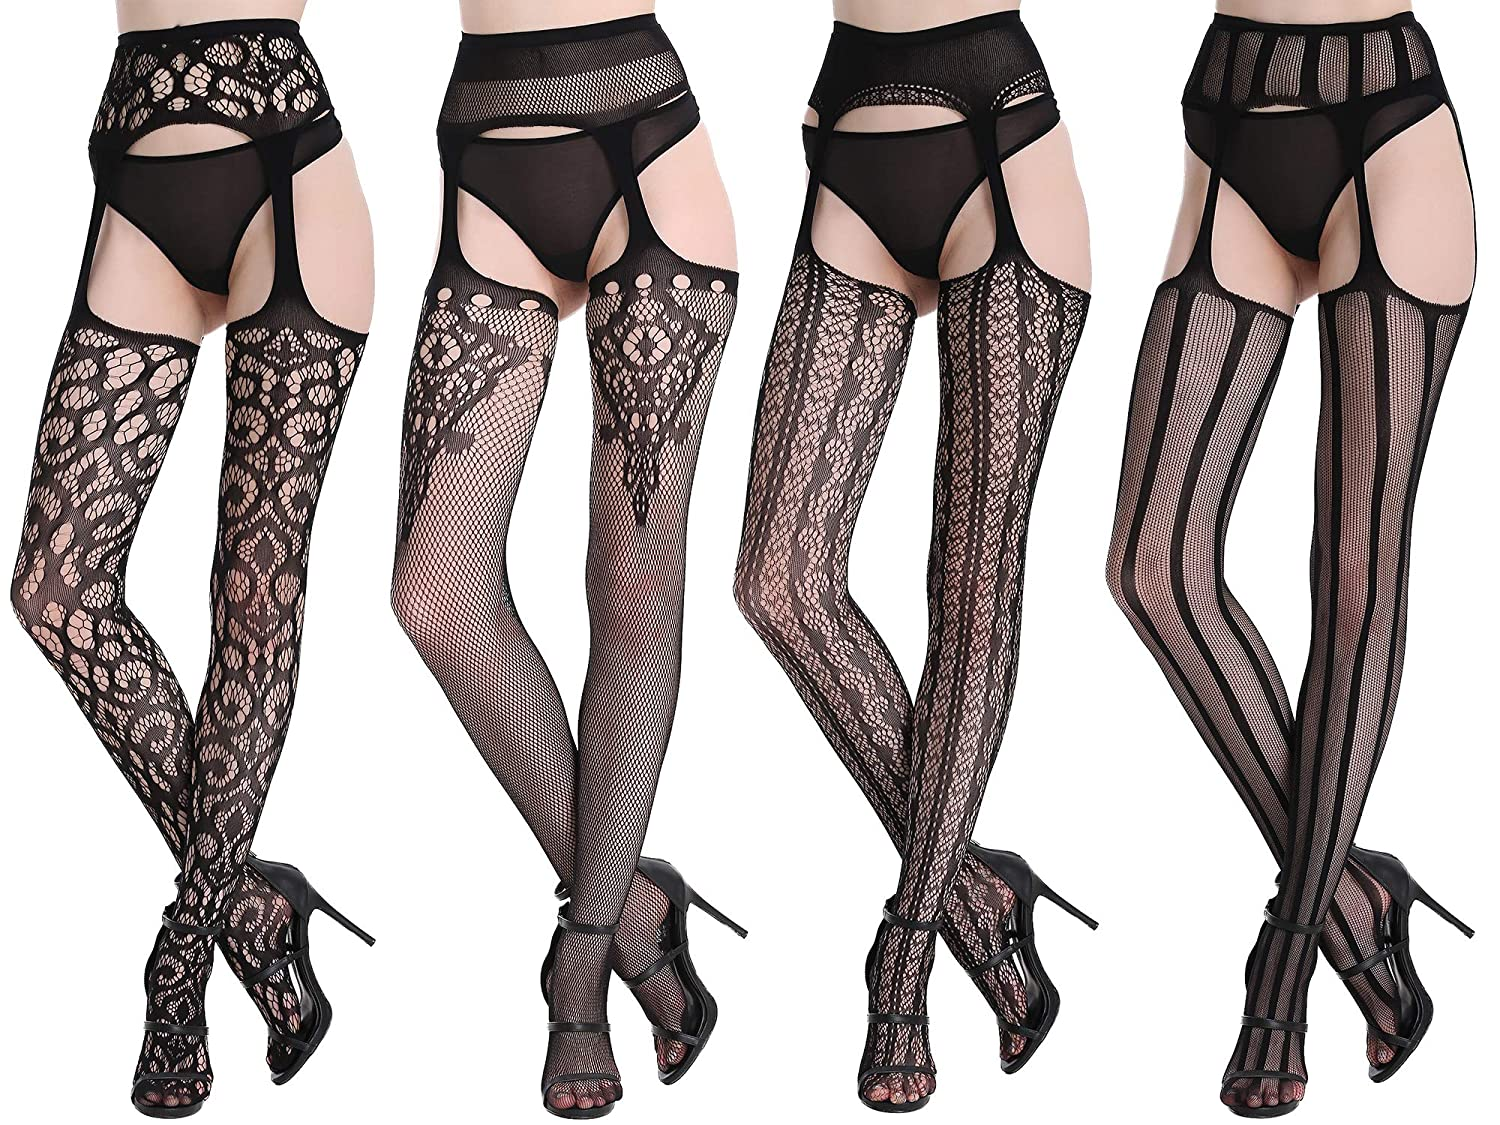 dffcce58edc Amazon.com  CherryDew Womens Sexy Suspender Pantyhose Fishnet Garter  Stockings Patterned Thigh High Tights Black 4 Pack  Clothing